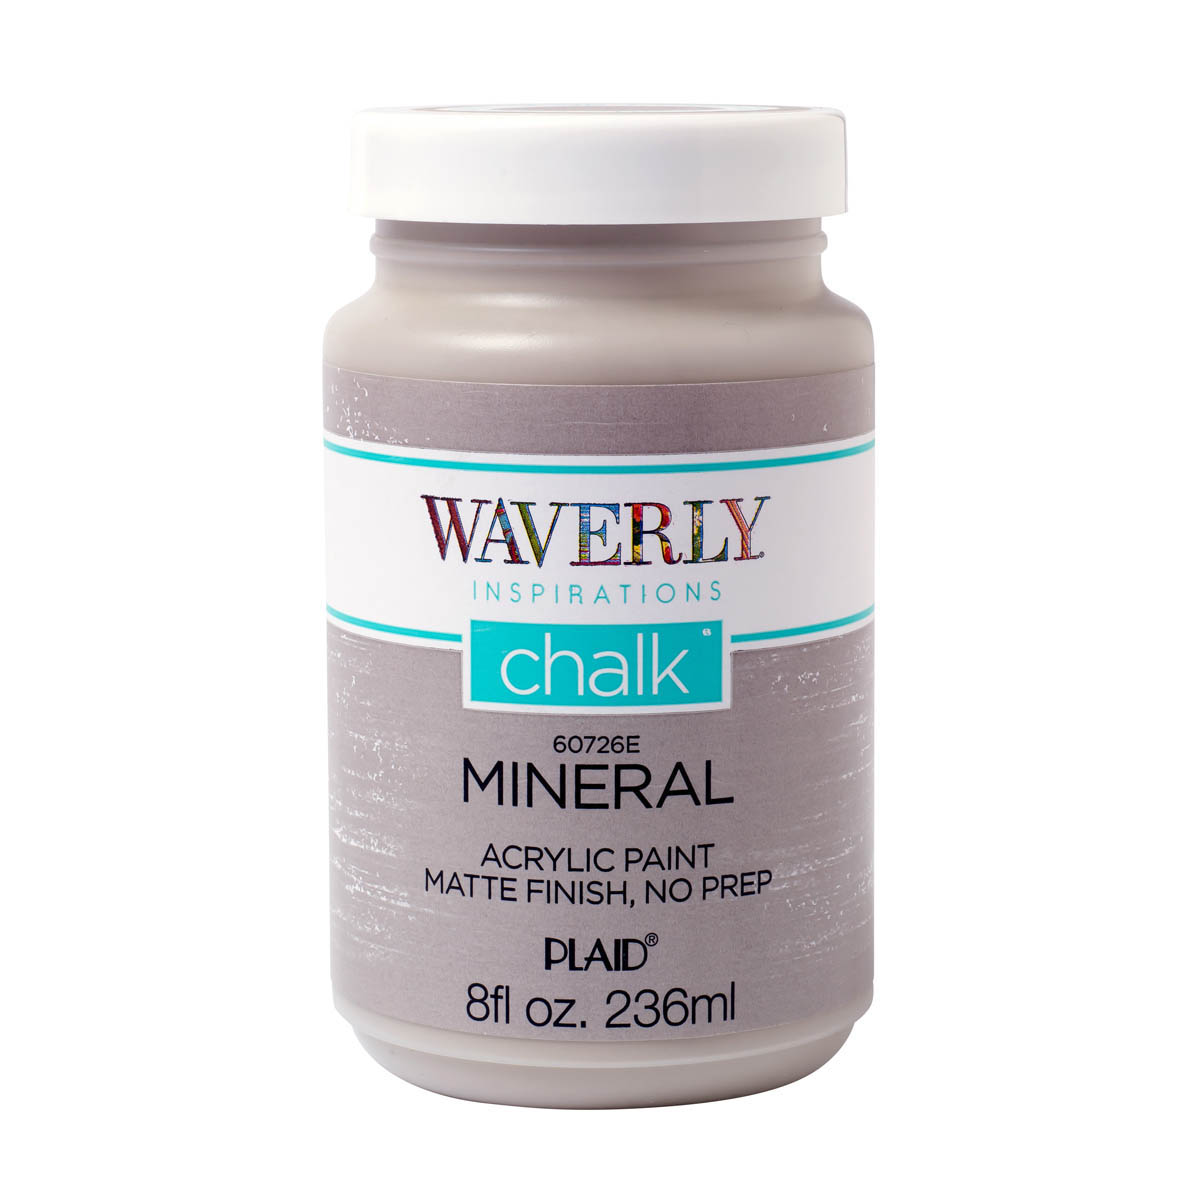 Waverly ® Inspirations Chalk Acrylic Paint - Mineral, 8 oz. - 60726E